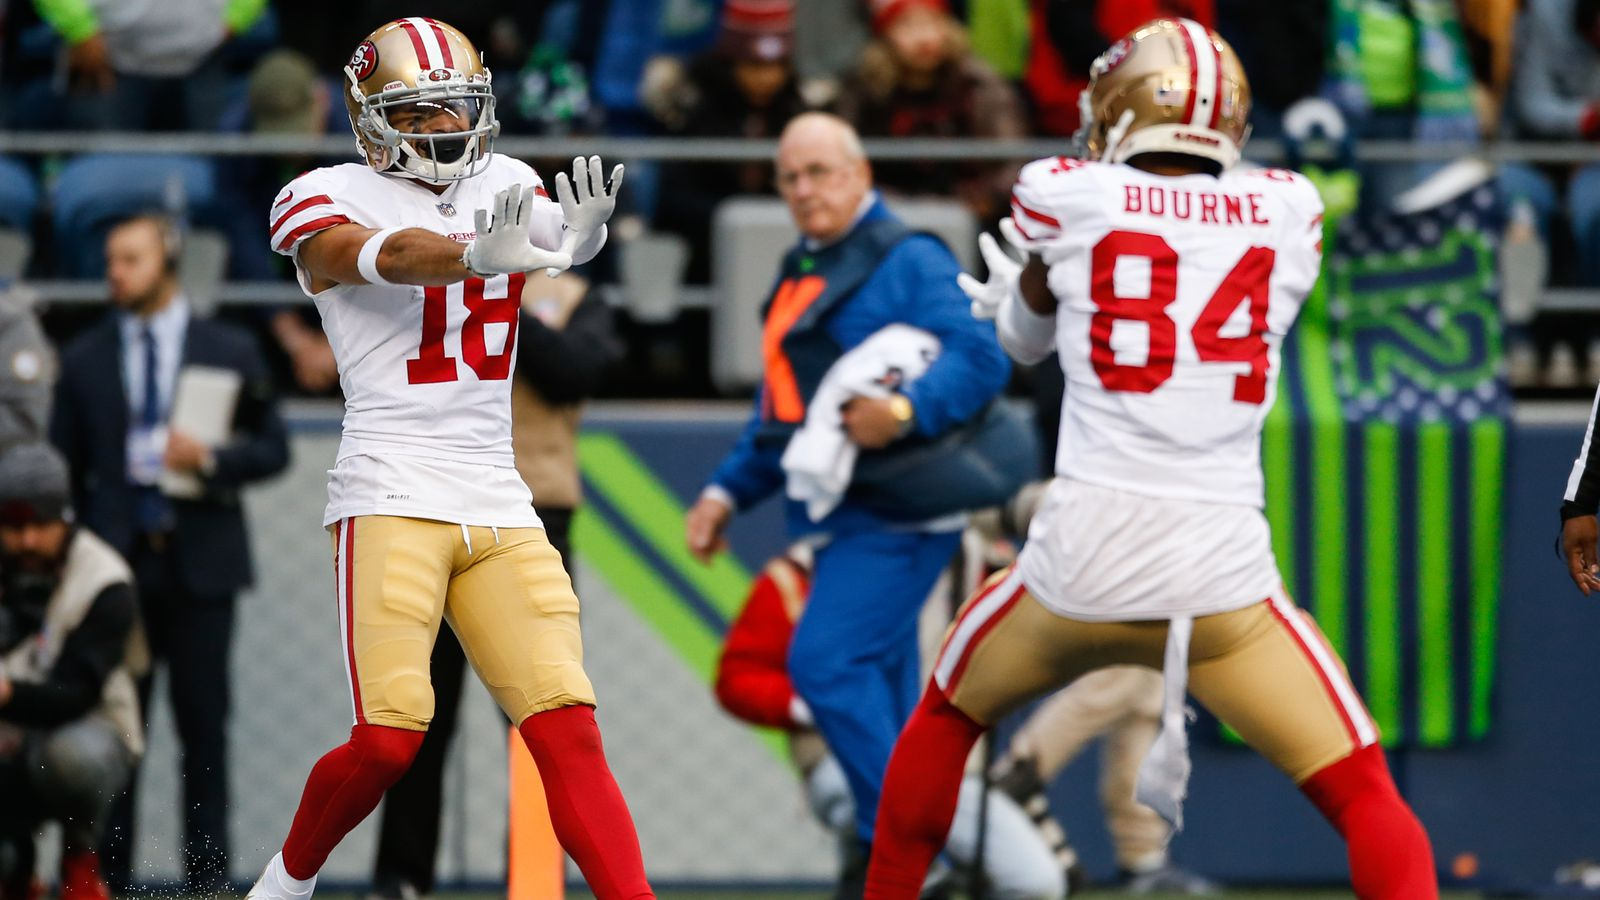 Kyle Brandt says 49ers could go from worst to first